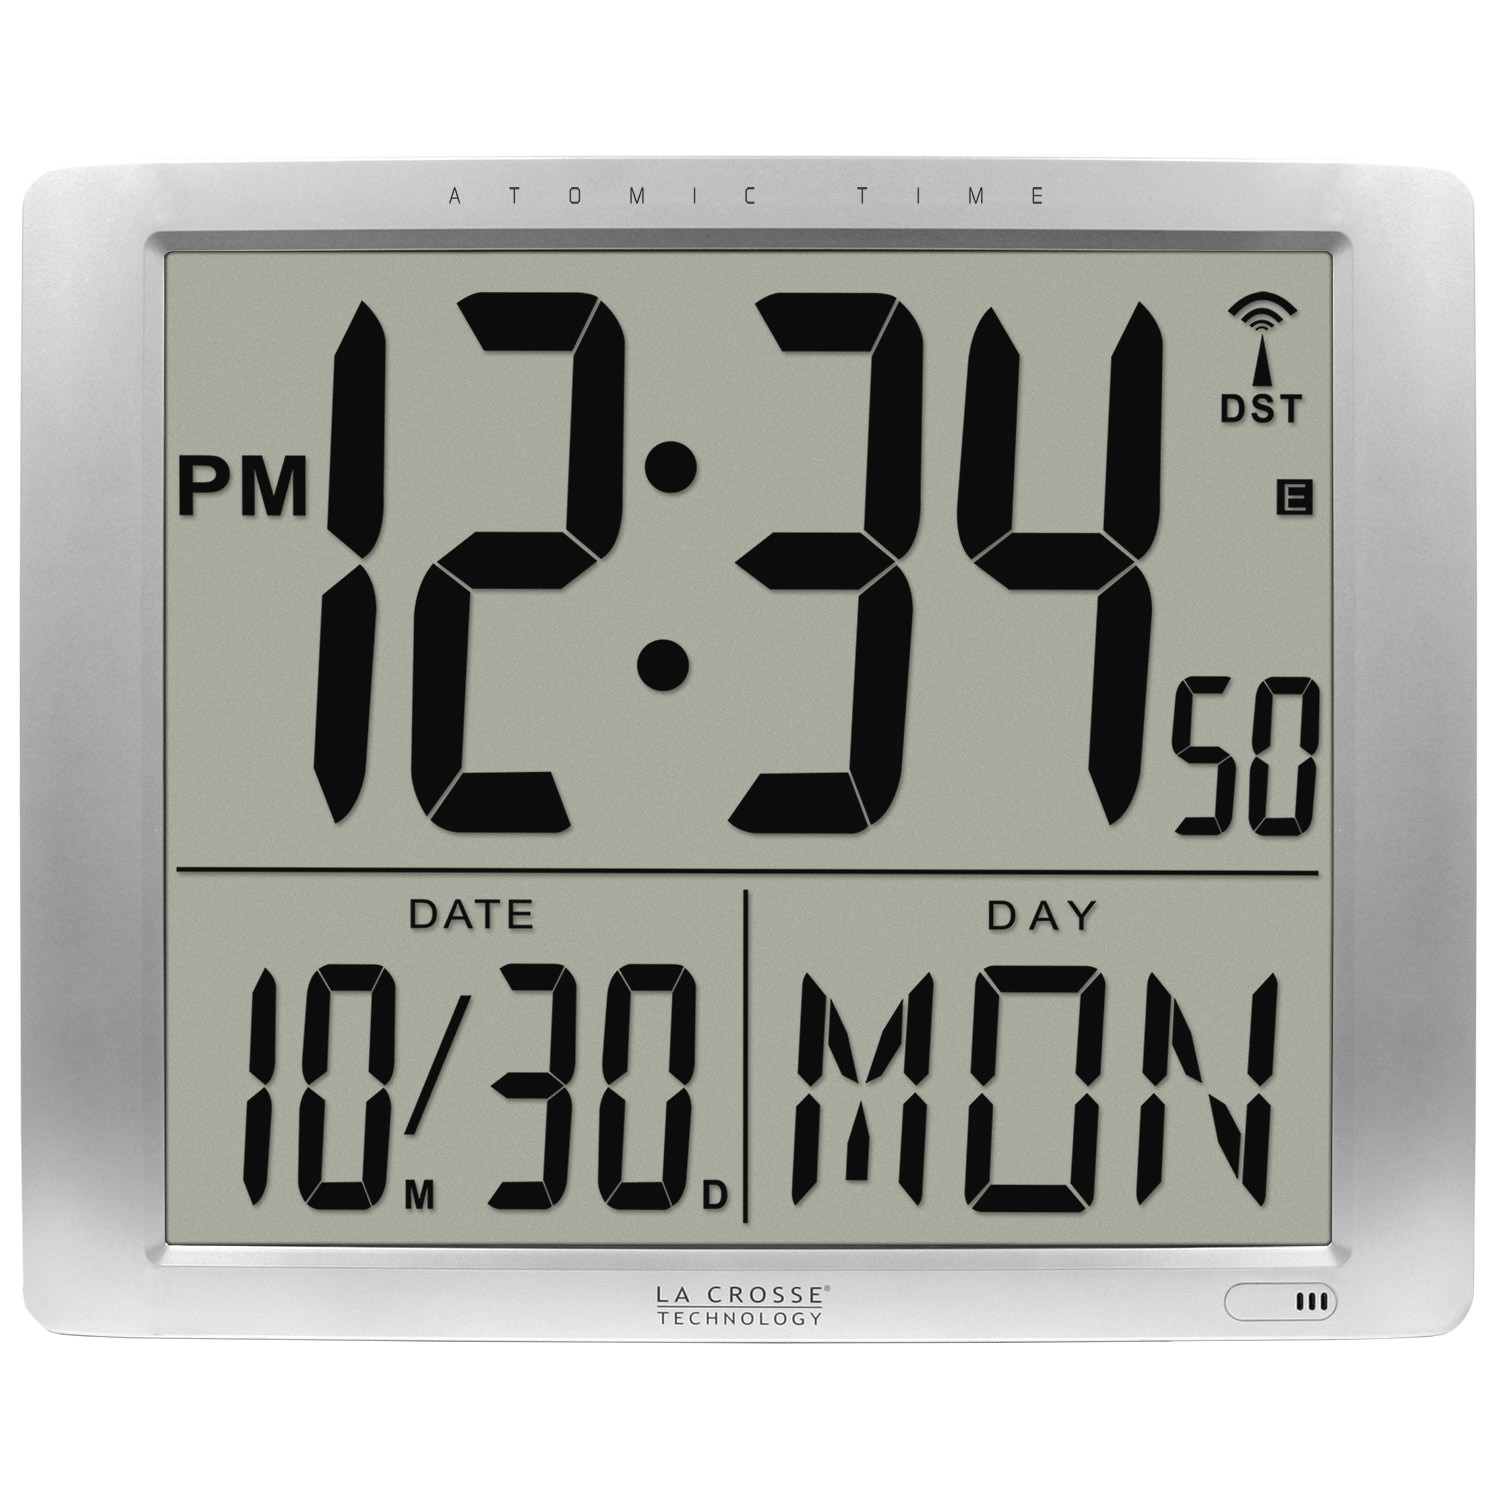 La Crosse Technology 5151316 Atomic ExtraLarge Digital Wall Clock